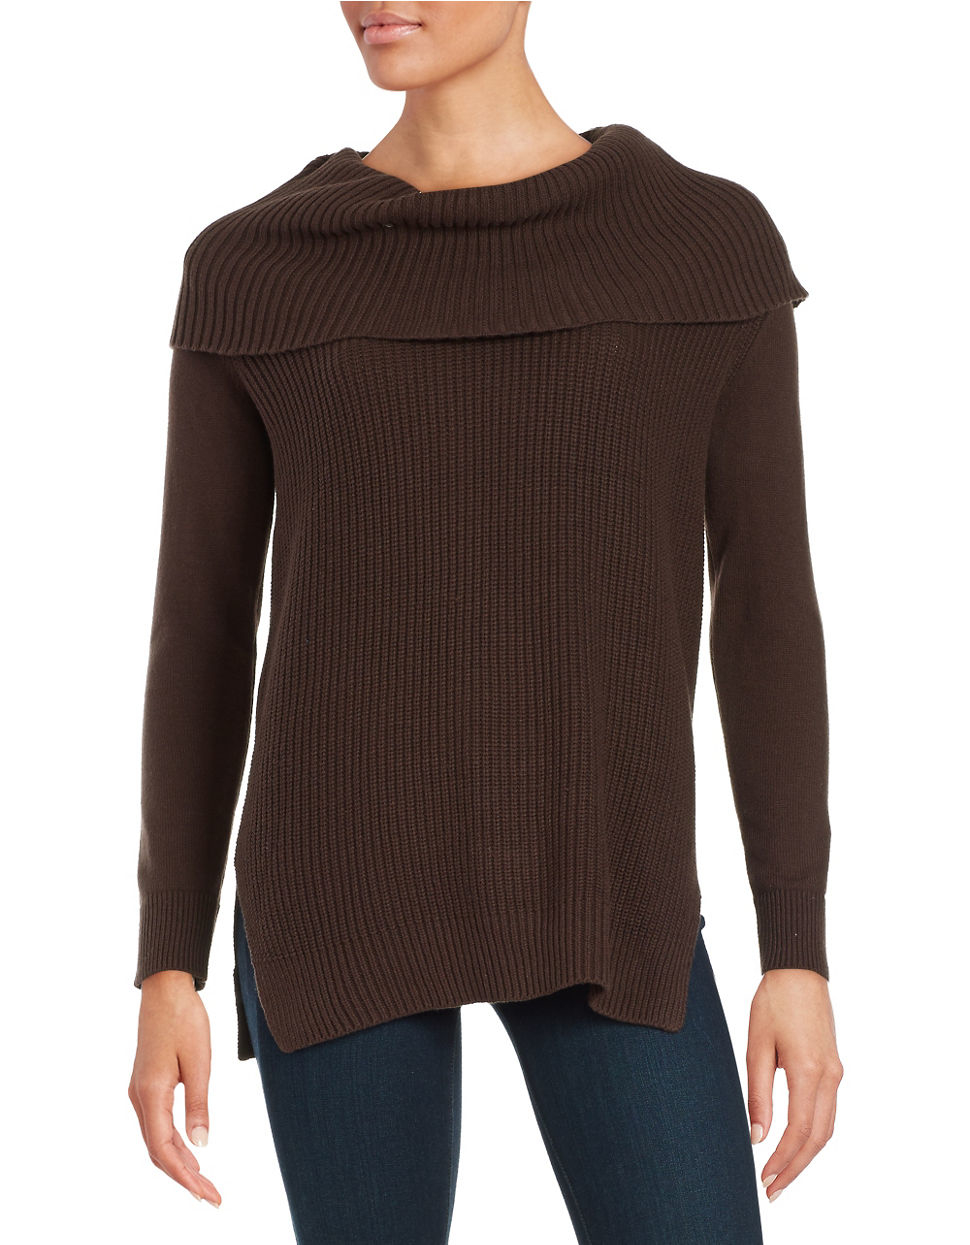 Michael michael kors Petite Turtleneck Sweater in Brown | Lyst